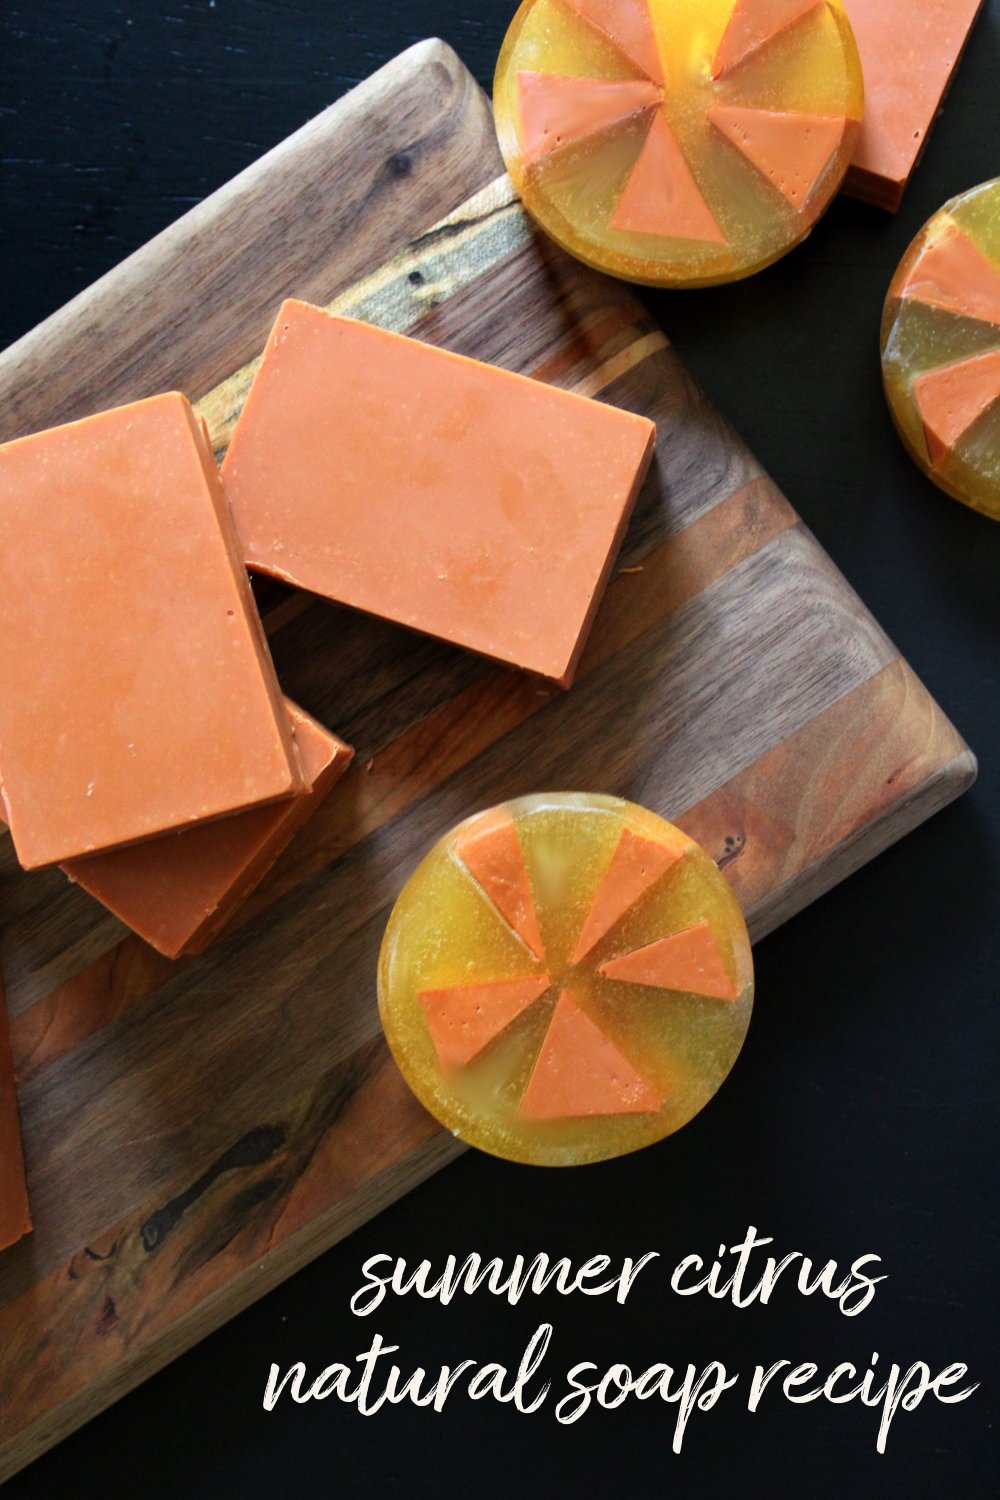 Summer Citrus Soap Recipe with a Natural Essential Oil Blend. This homemade summer citrus soap recipe contains a citrus inspired natural essential oil blend of peppermint, orange and lemongrass. Formulated to be both cleansing and conditioning, this natural cold process soap works great at tackling sweat and grime without over drying skin.